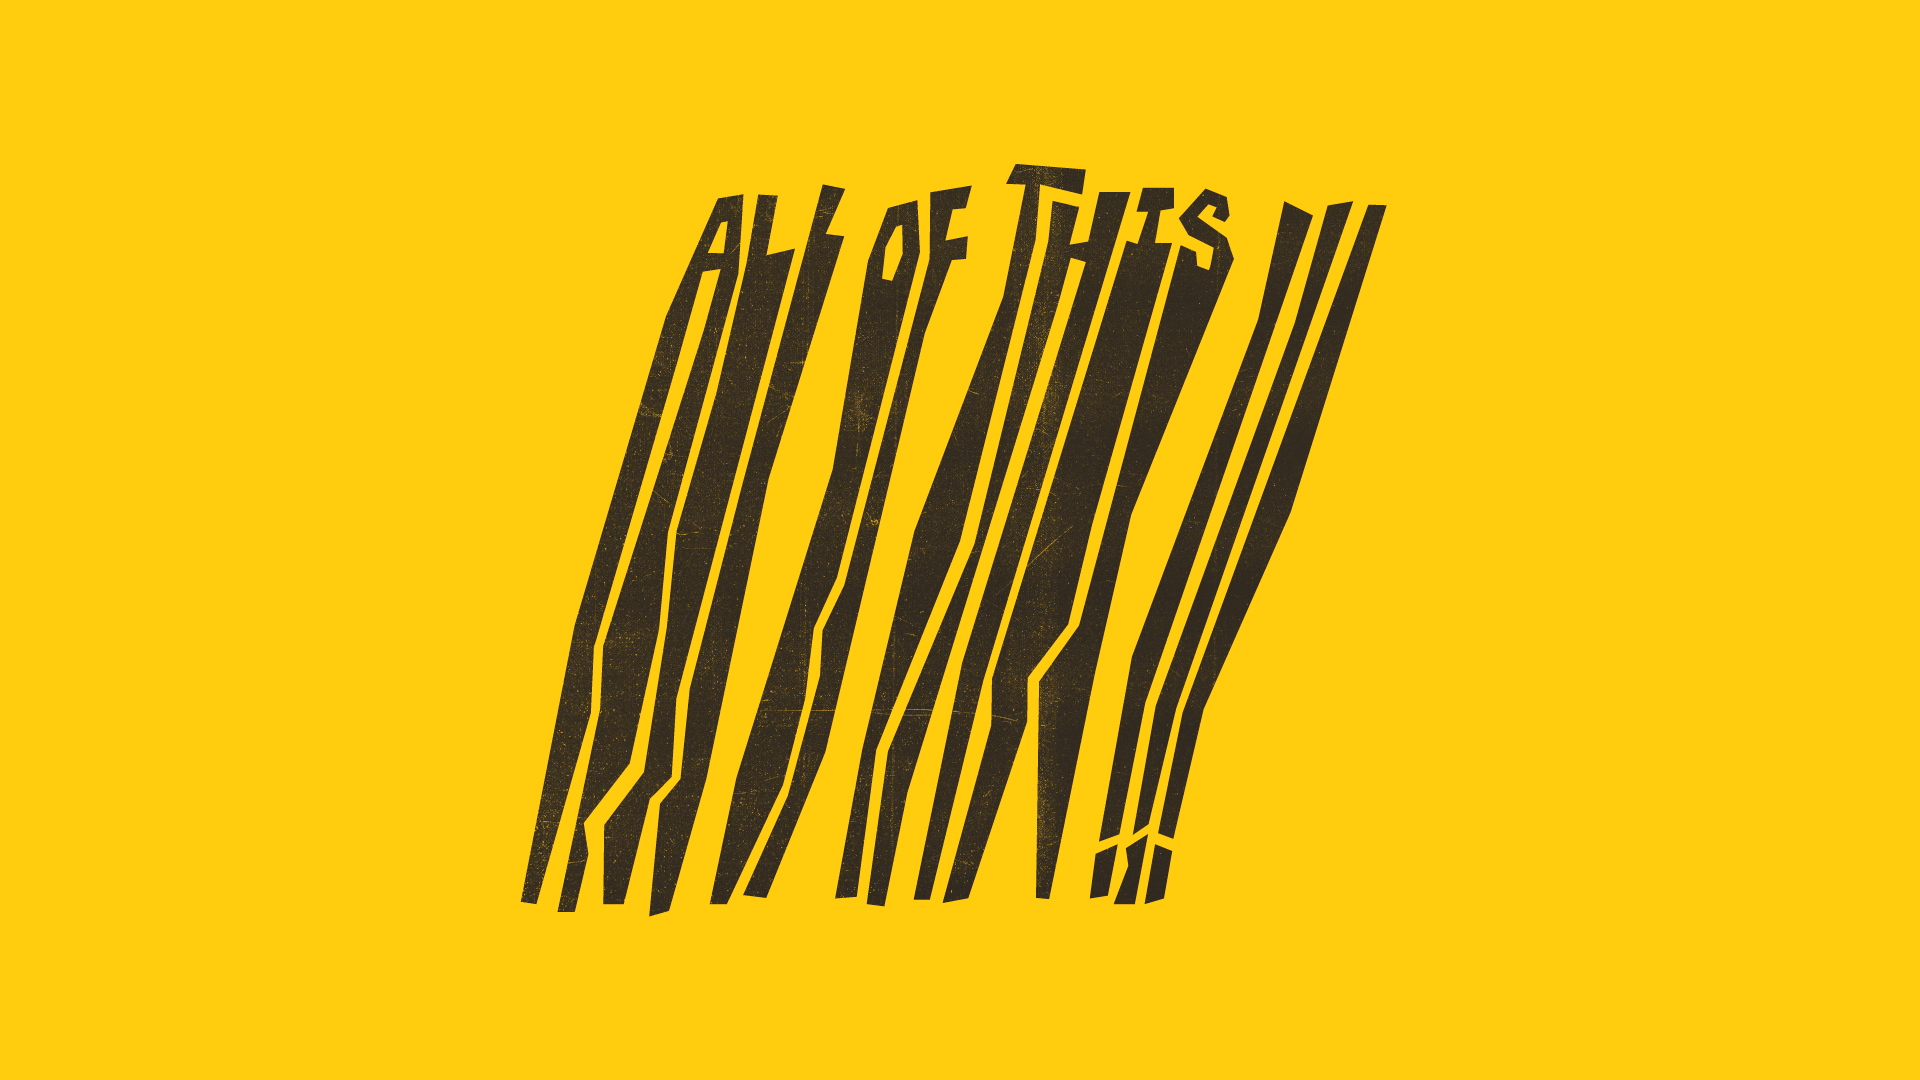 all-of-this_main-title_v2_blk-on-yellow.png